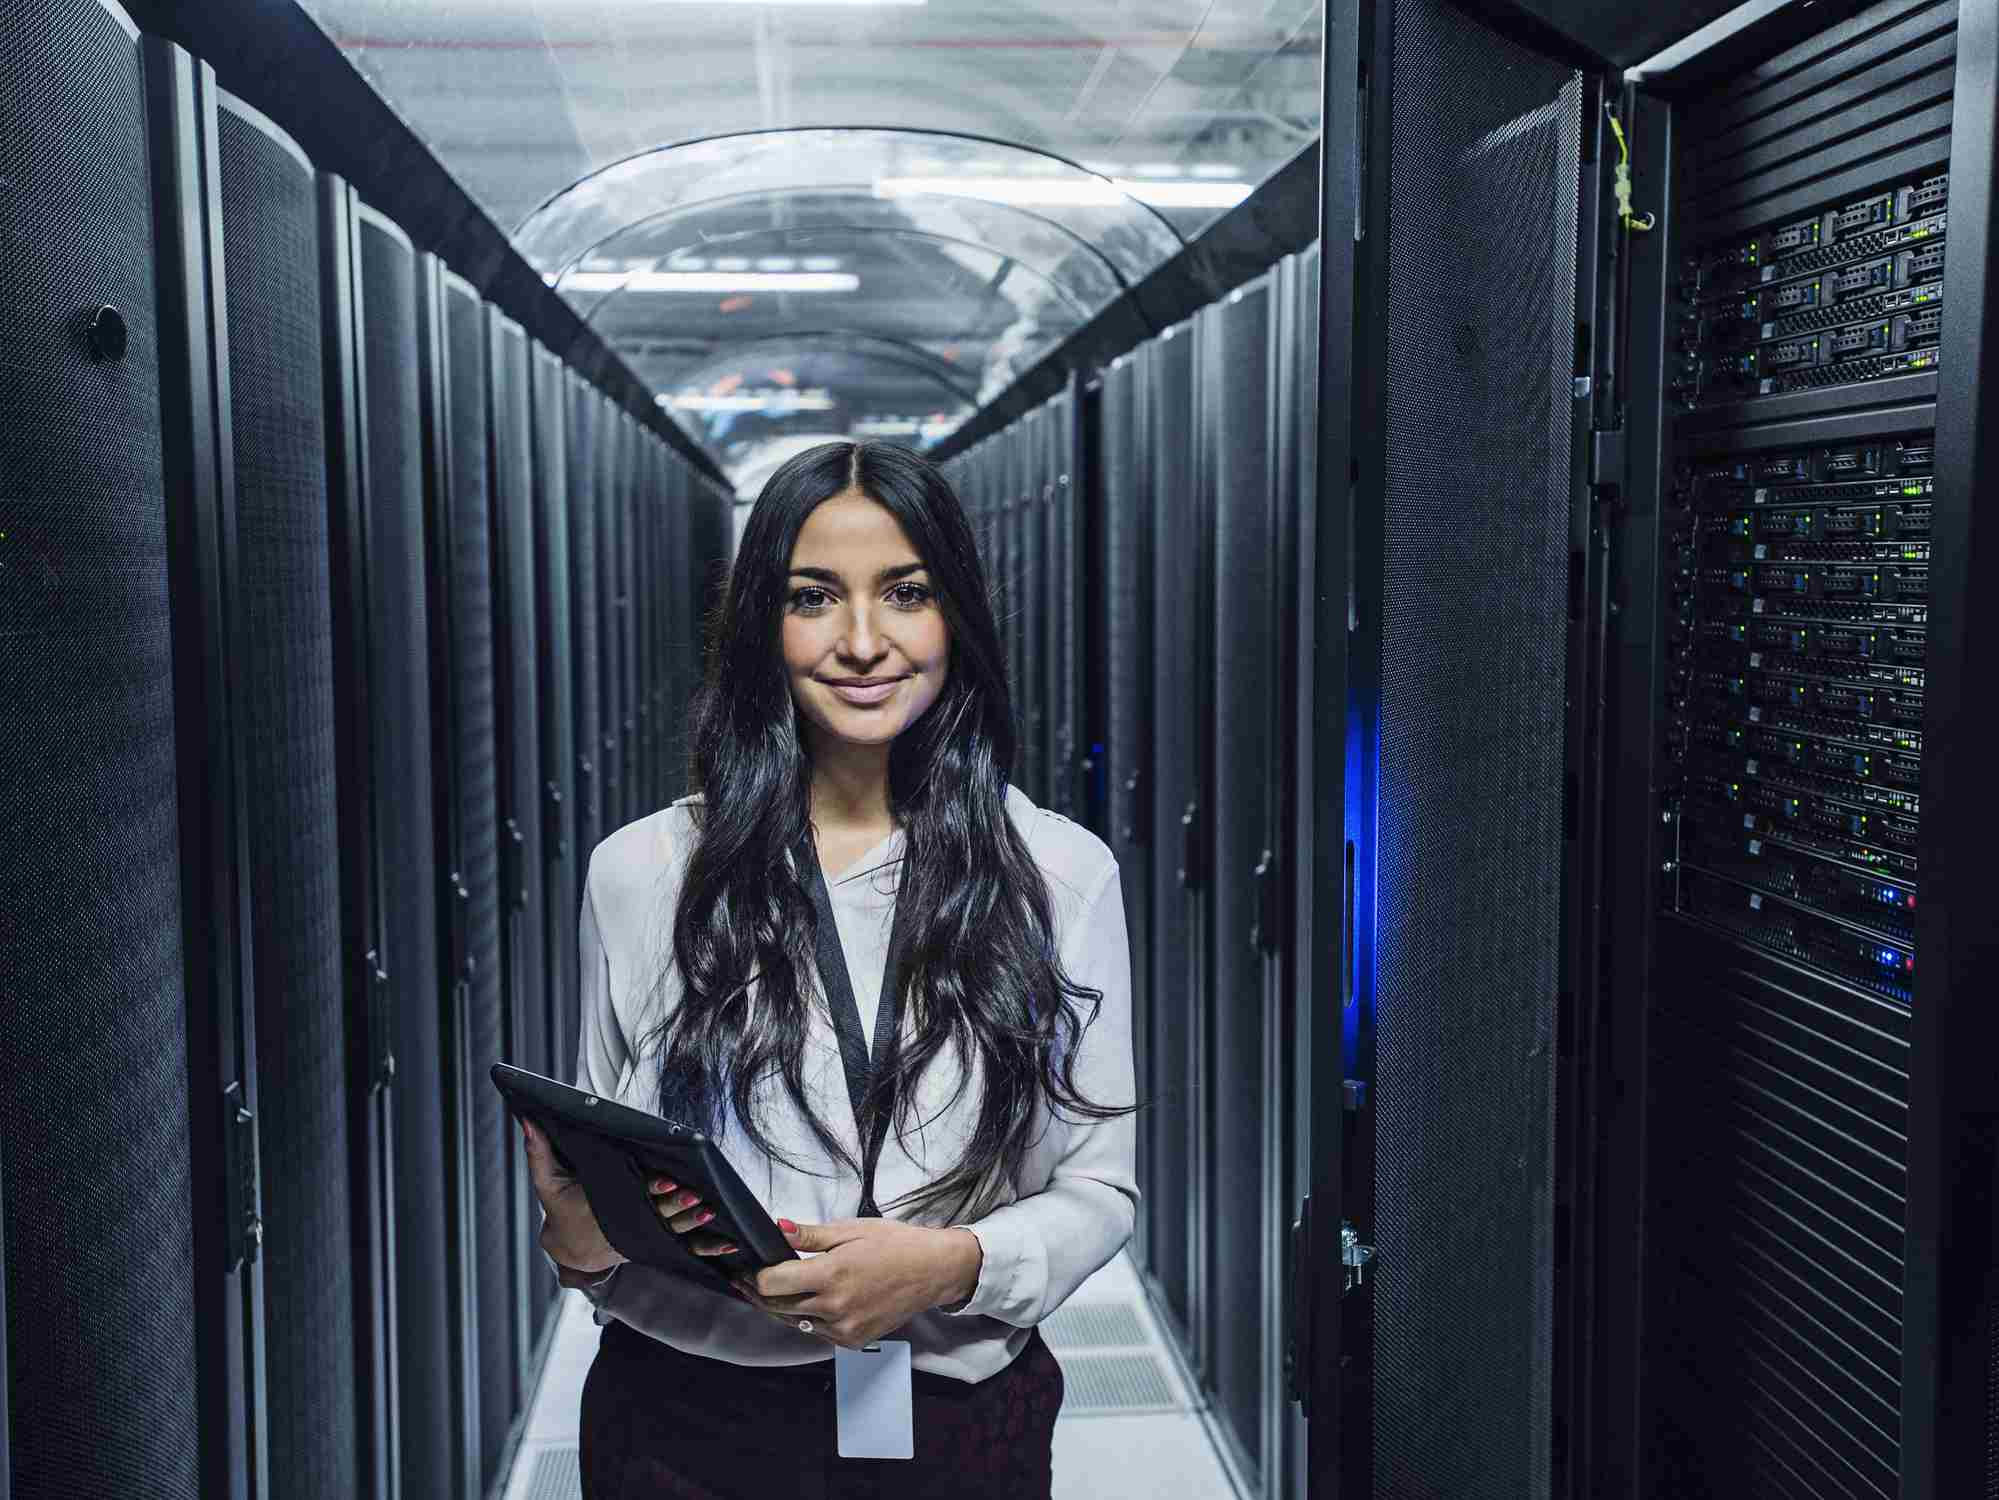 Computer and Information Systems Manager in server room